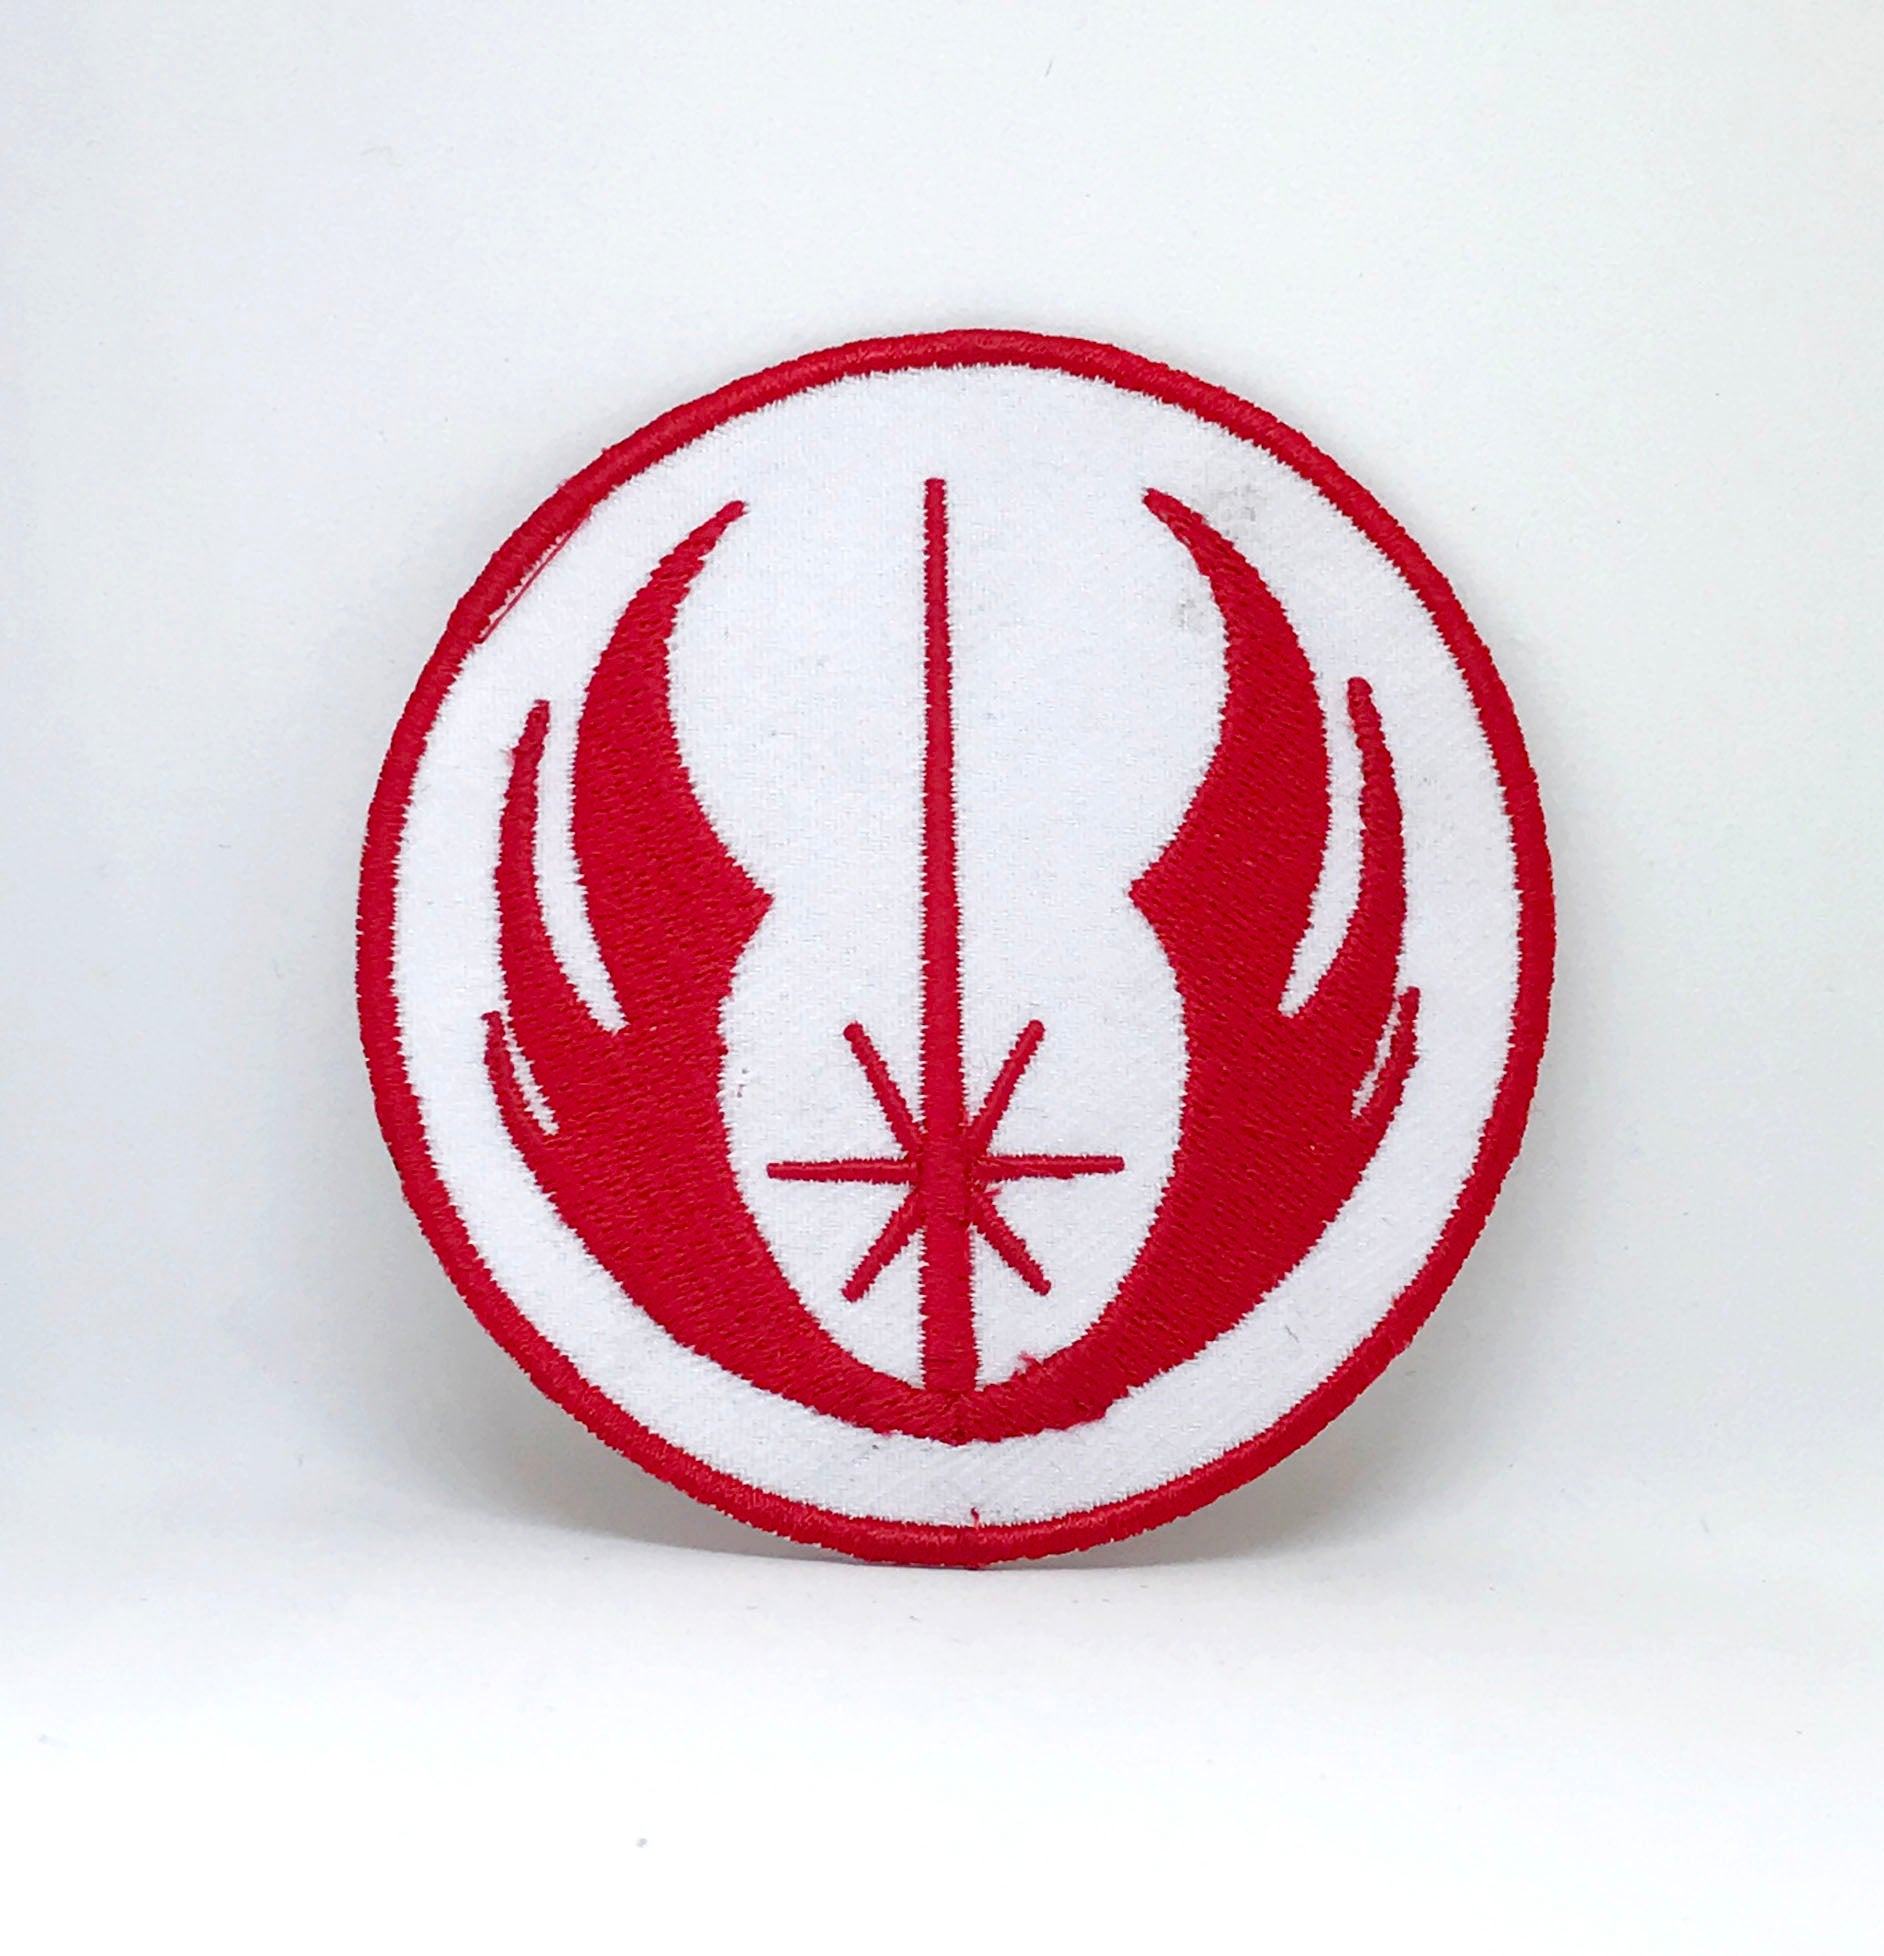 STAR WARS Movies Iron or Sew on Embroidered Patches - STAR WARS JEDI ORDER